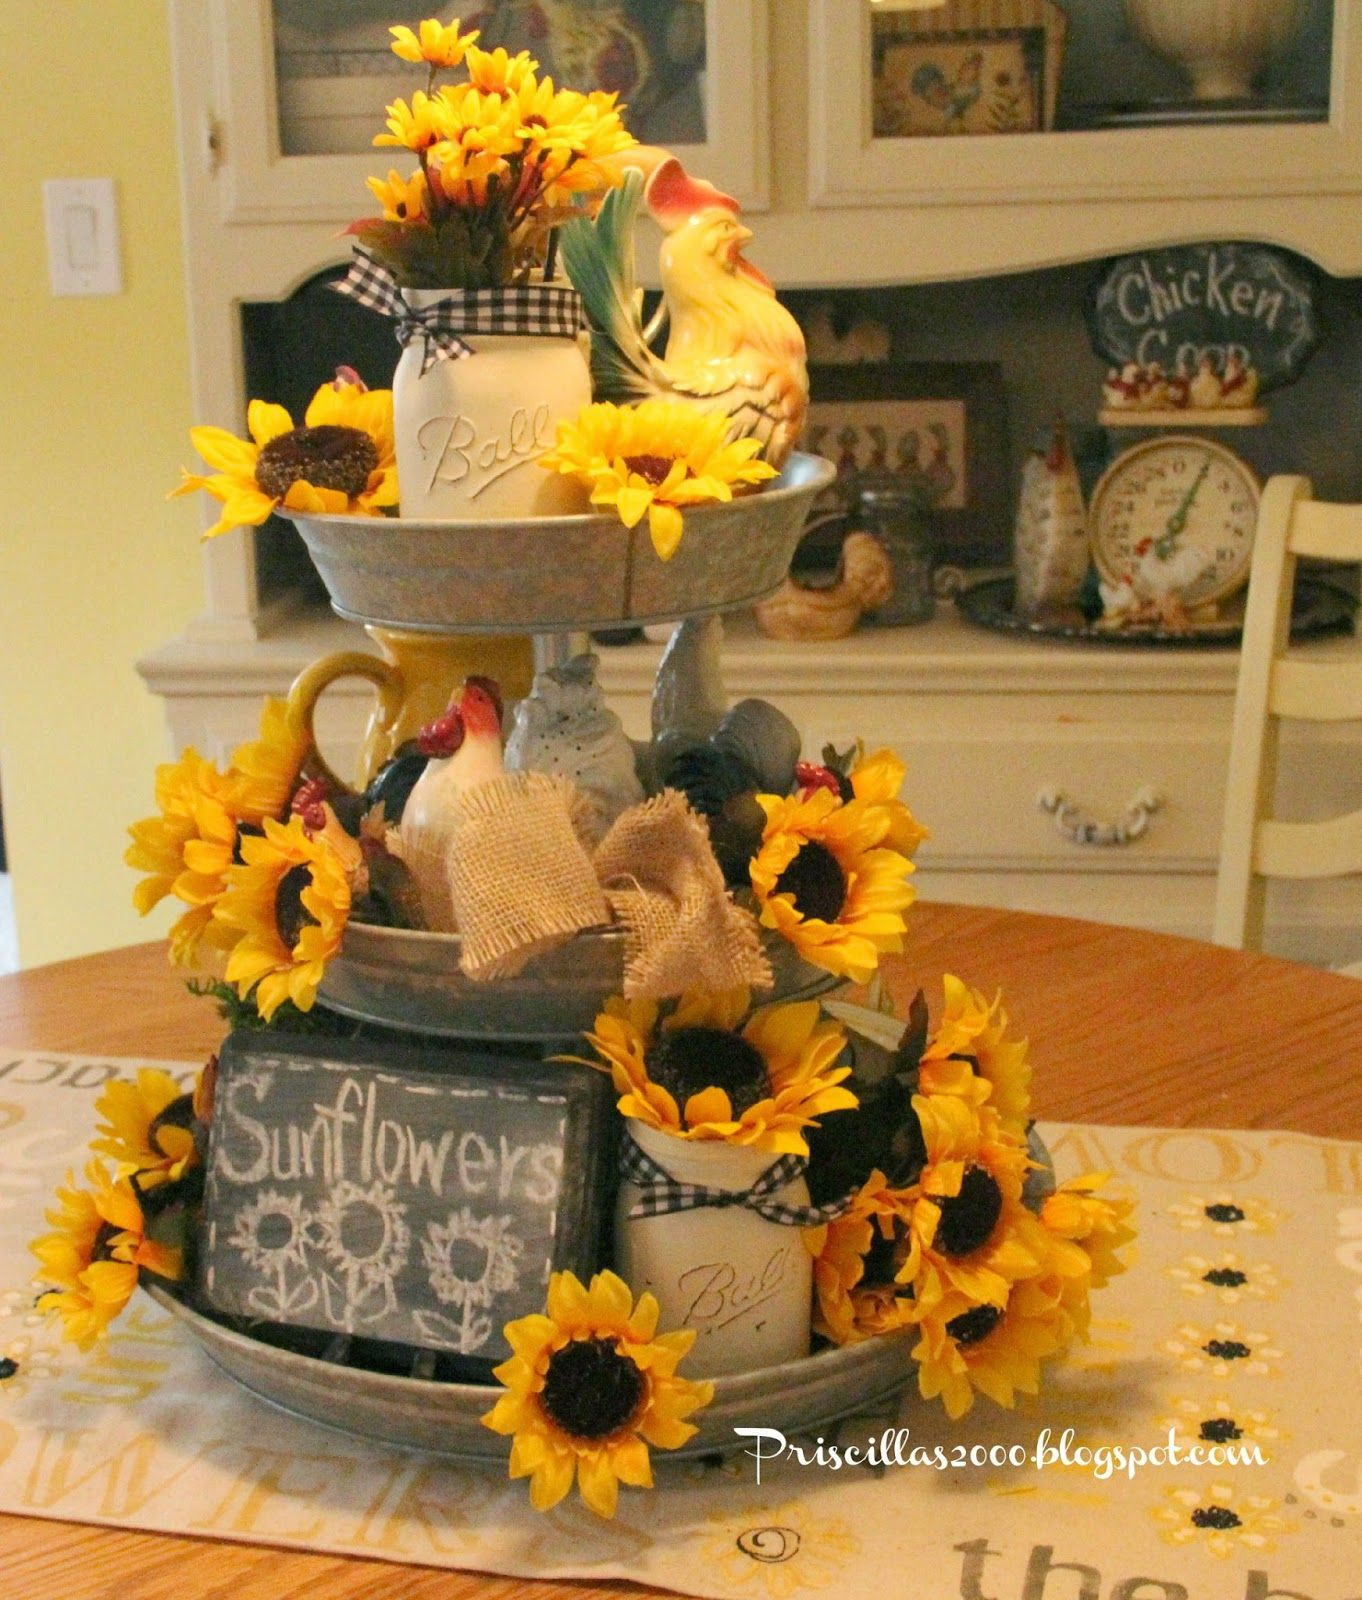 Tuscan Sunflower Kitchen Decor Good Morning And Happy Weekend I Have Had My Galvanized Tiered